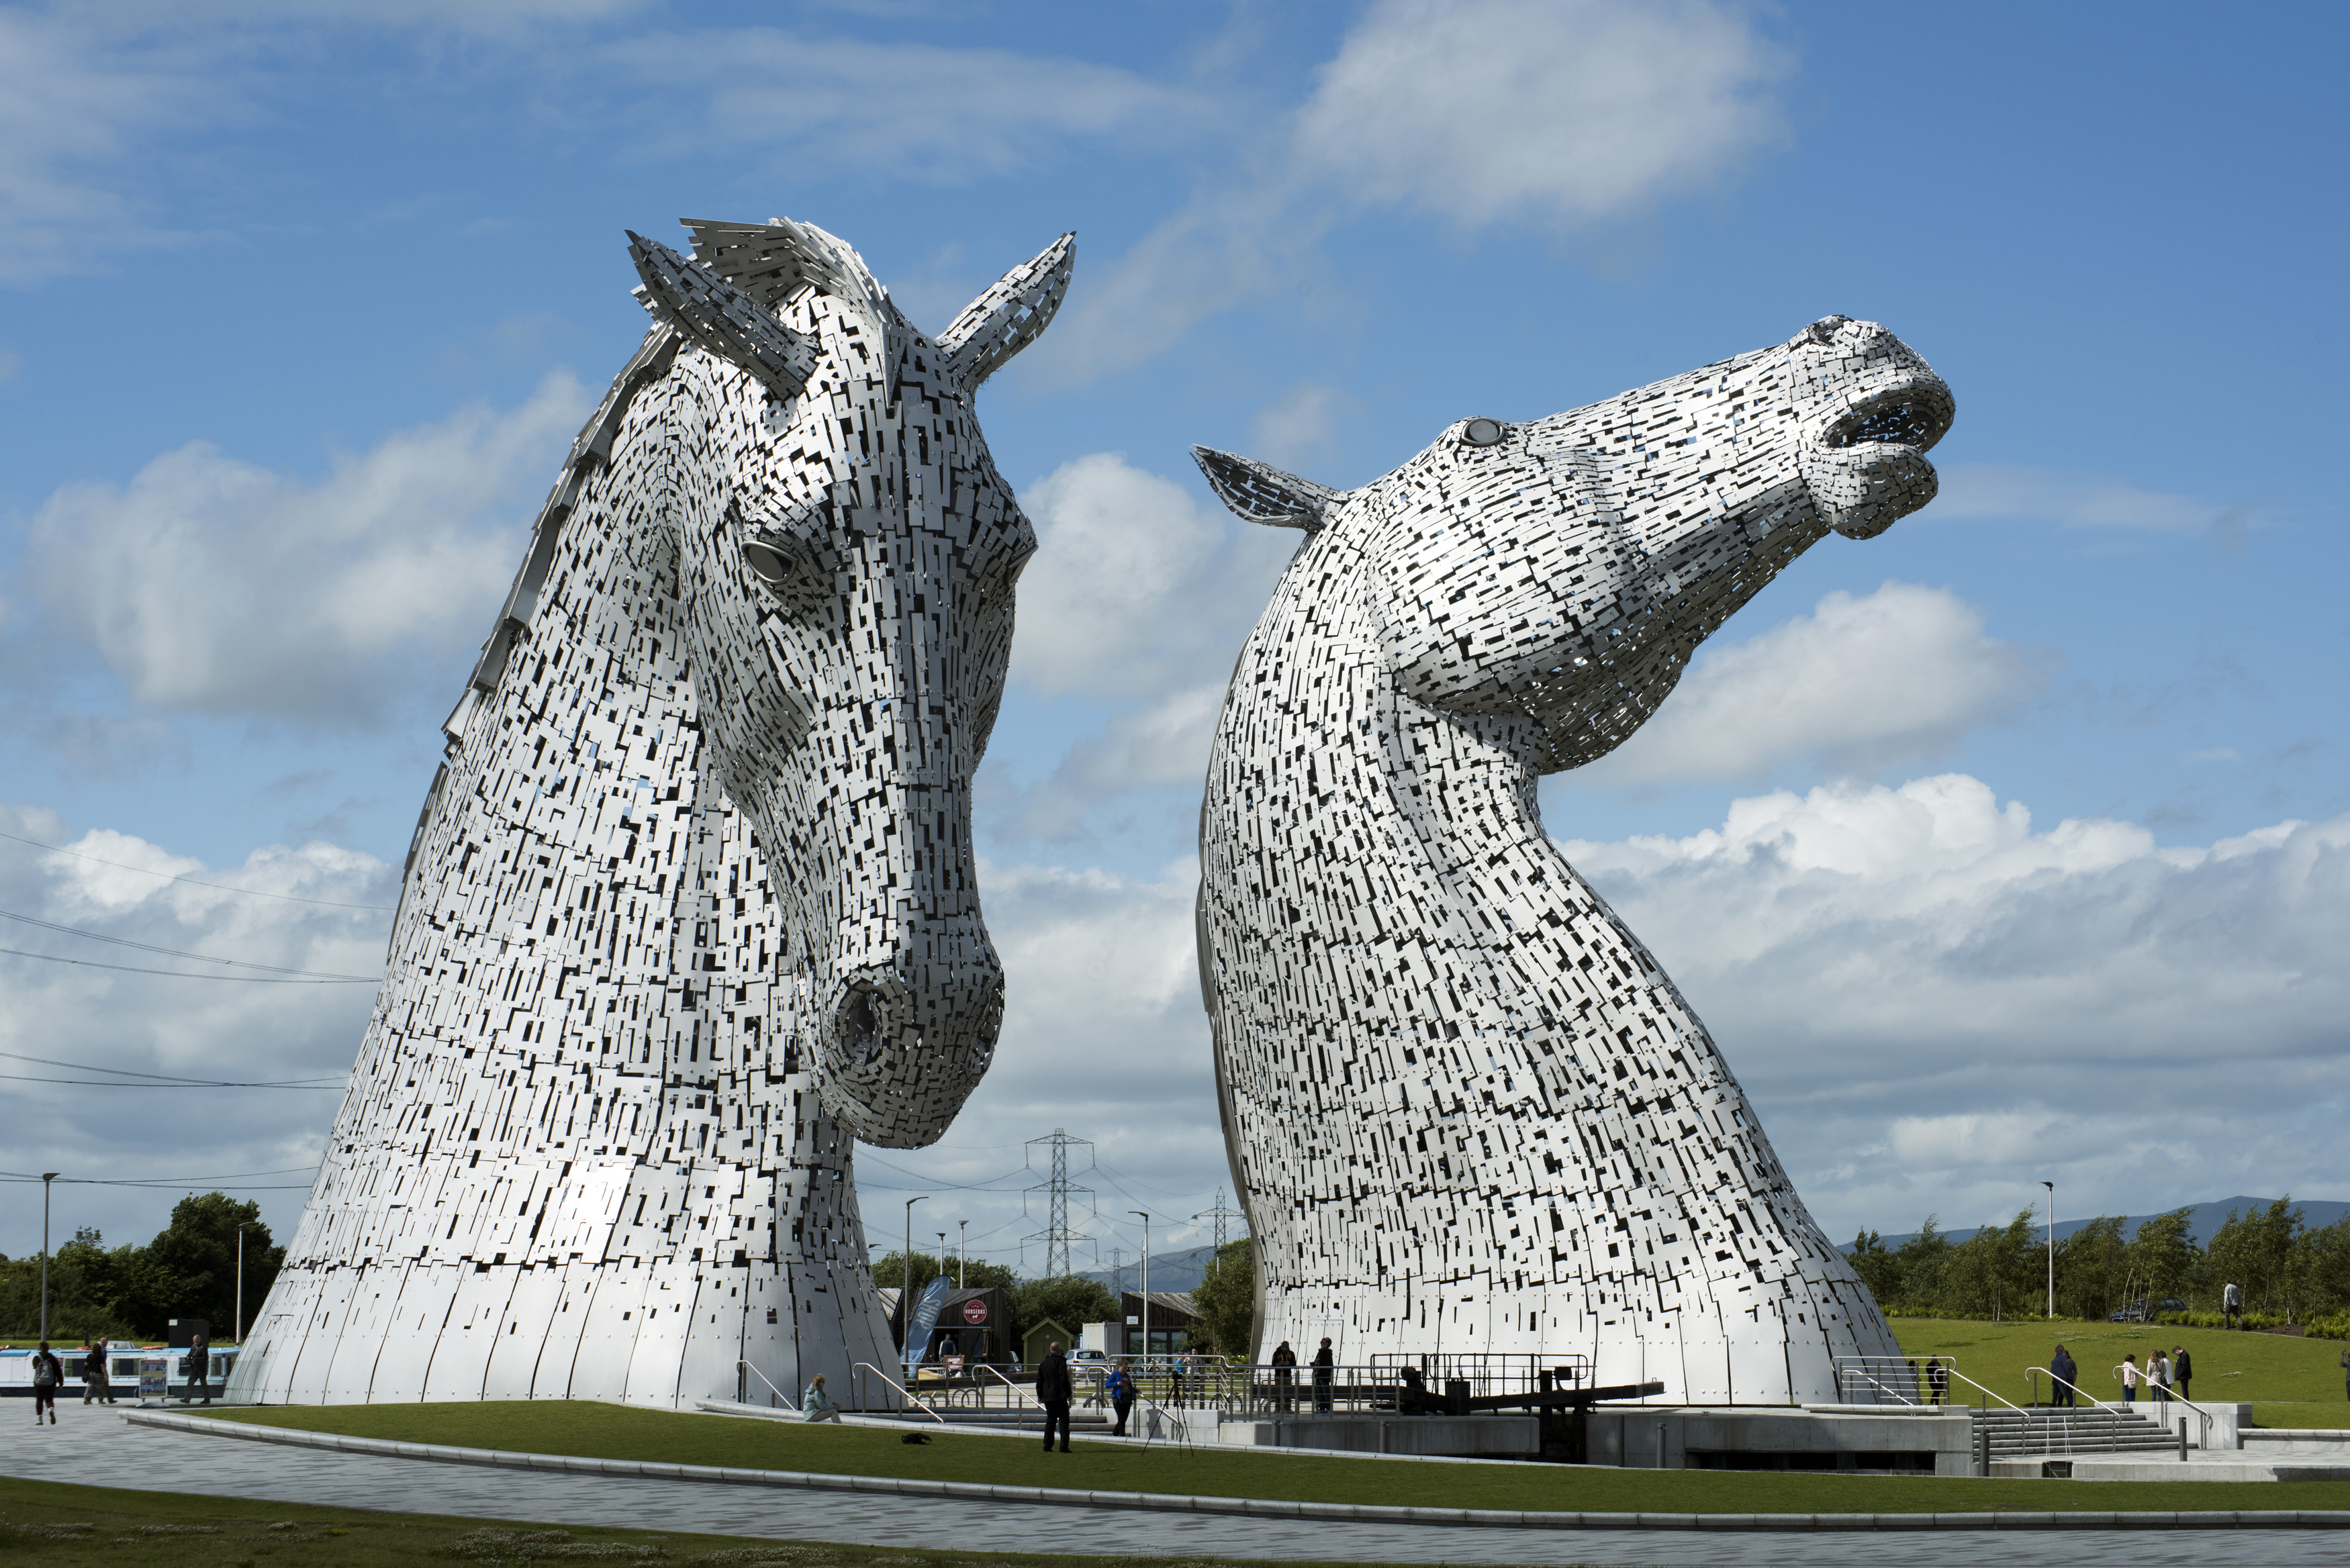 Two extra large monuments in Falkirk, Scotland shaped like horse heads in tribute to their hard labor